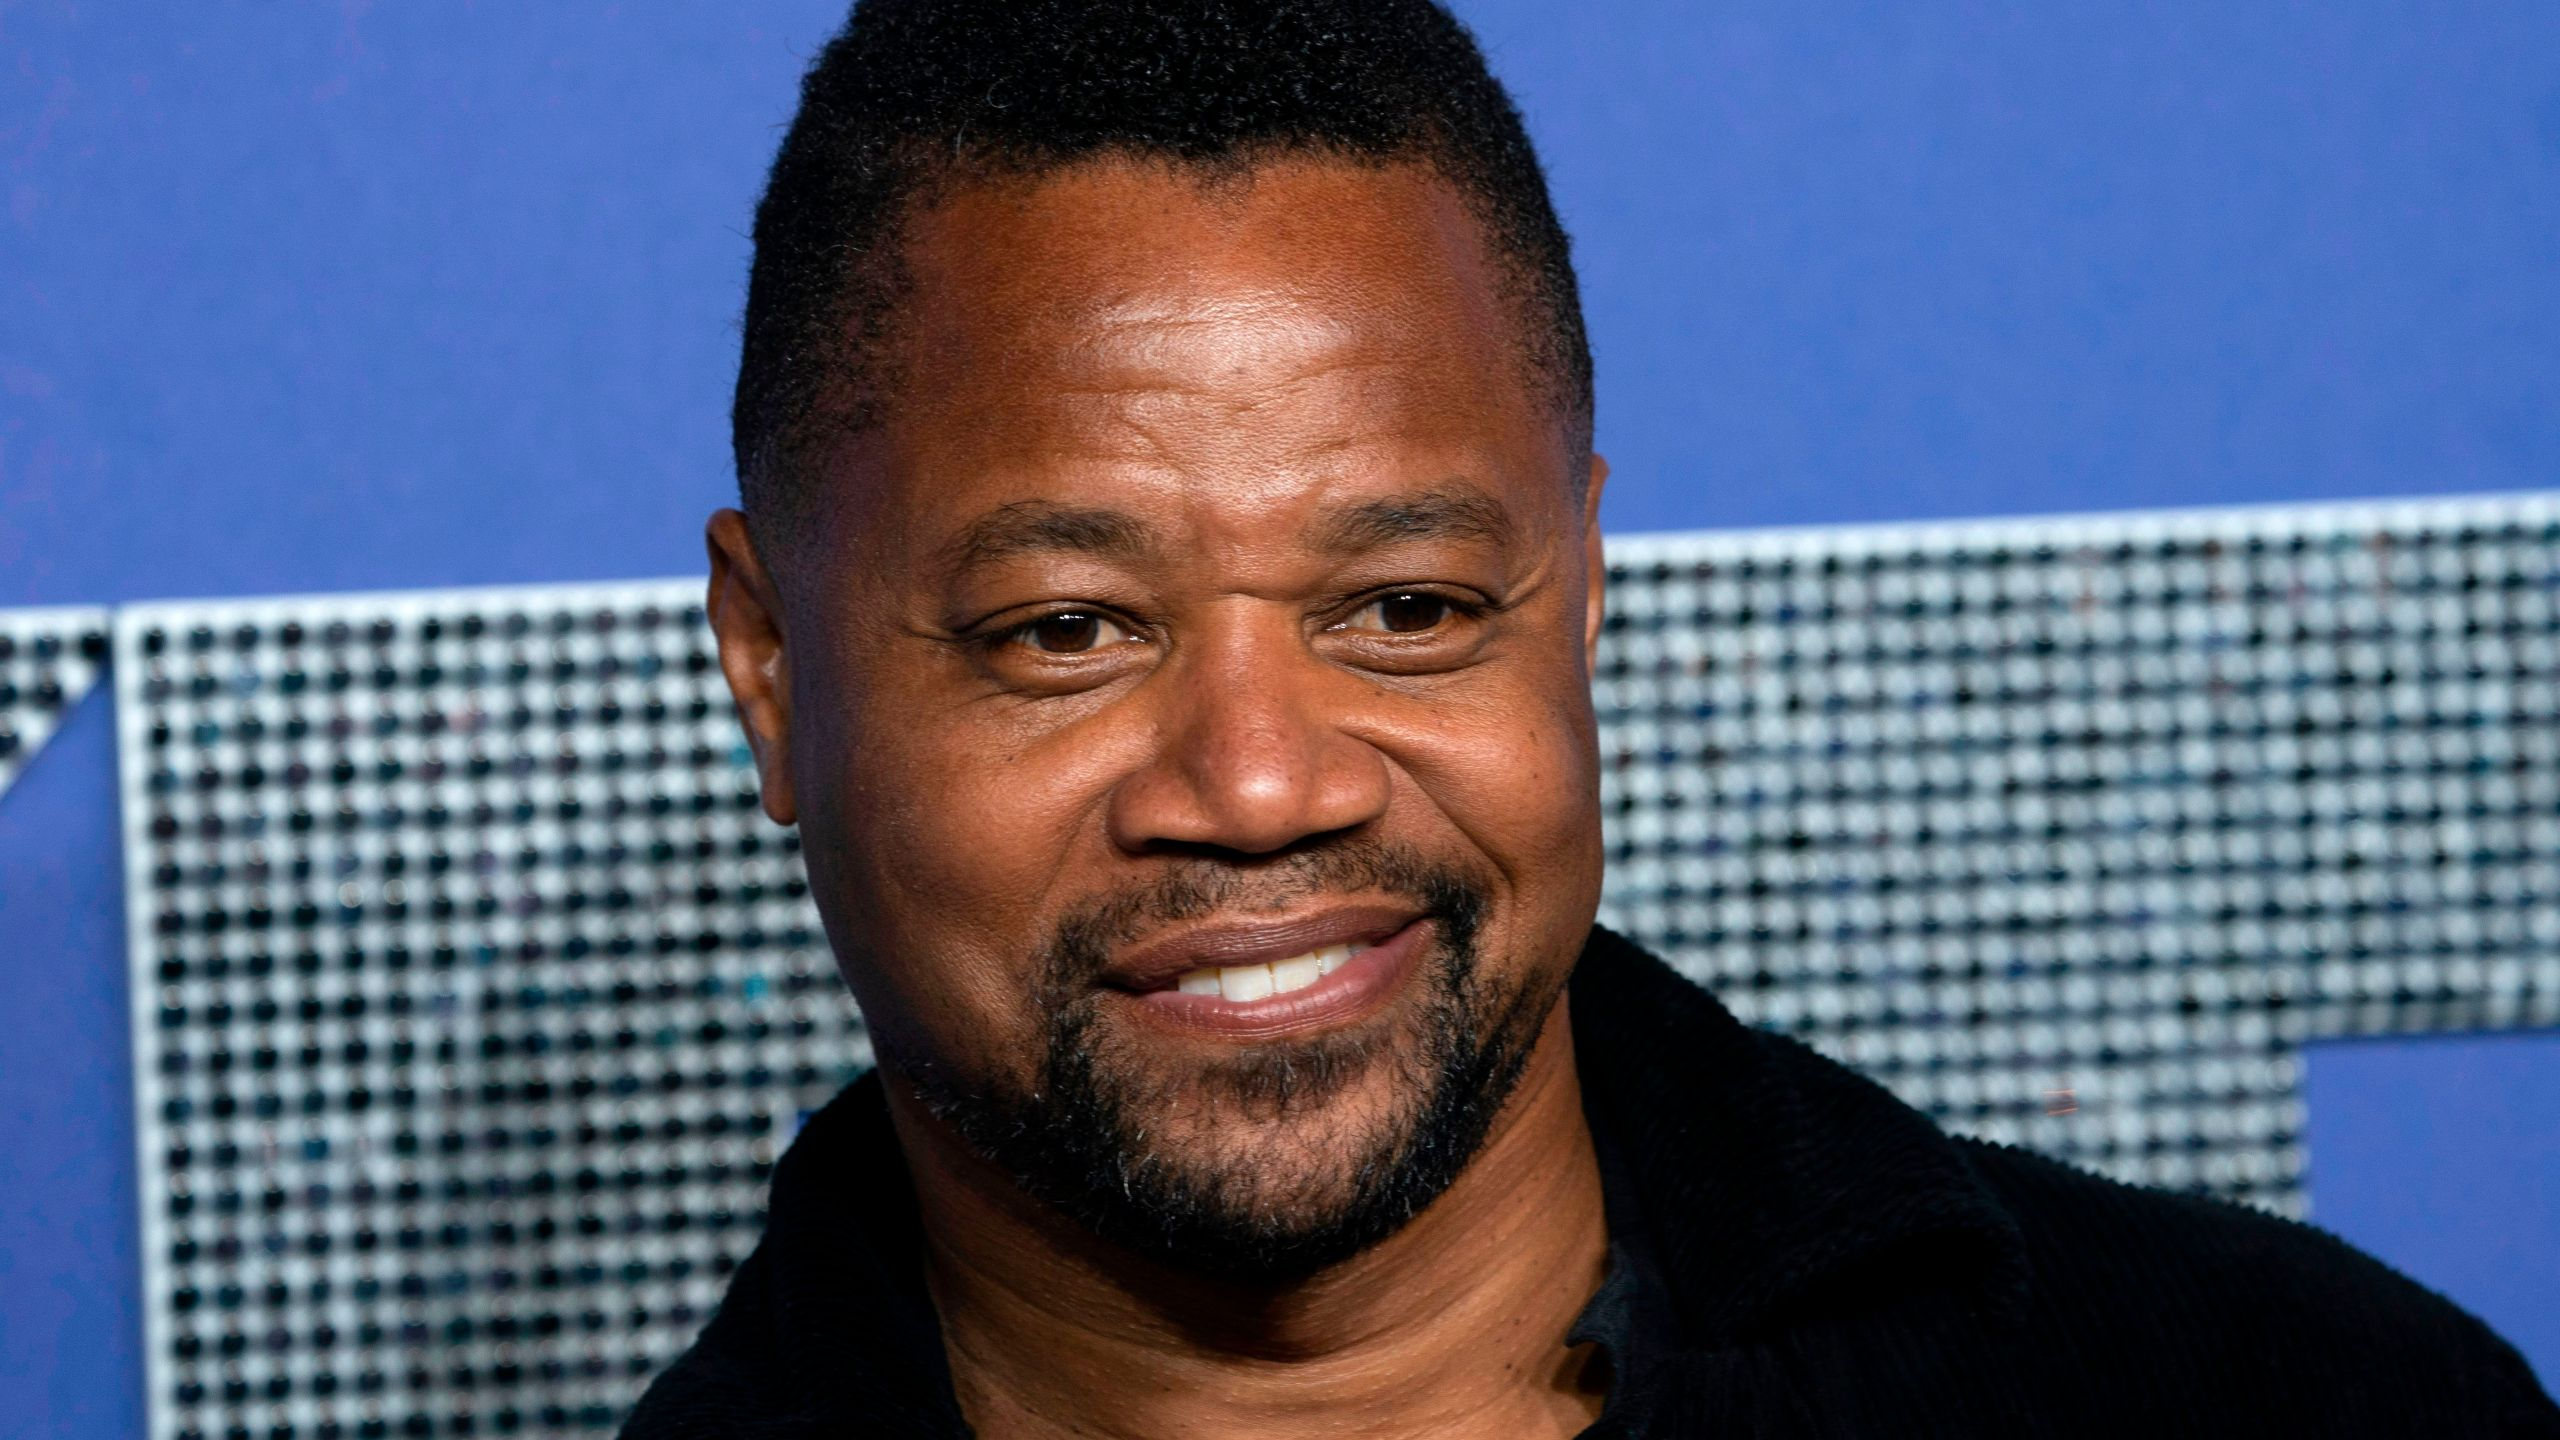 """US actor Cuba Gooding Jr. attends the US premiere of """"Rocketman"""" on May 29, 2019 at Alice Tully Hall in New York. (Credit: DON EMMERT/AFP/Getty Images)"""